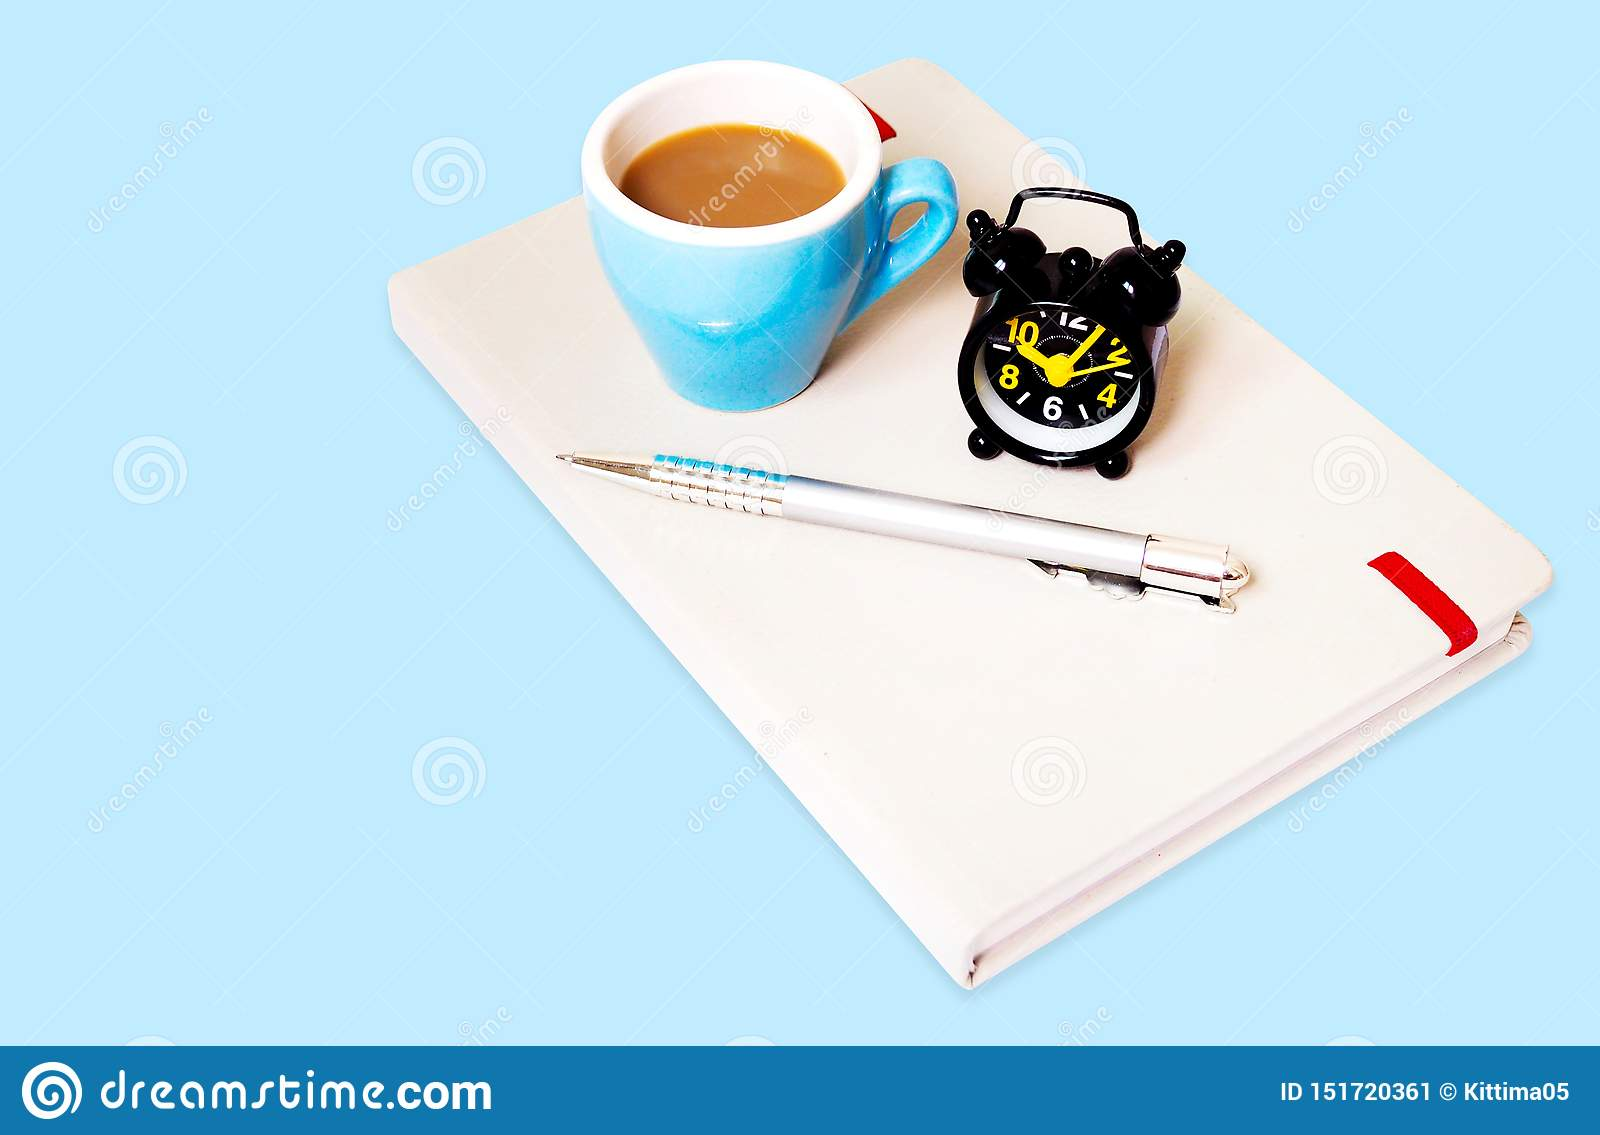 top view of background template design with coffee mug alarm clock and notebook on blue paper stock image image of empty creativity 151720361 https www dreamstime com top view background template design coffee mug alarm clock notebook blue paper equipment working pens notebooks image151720361